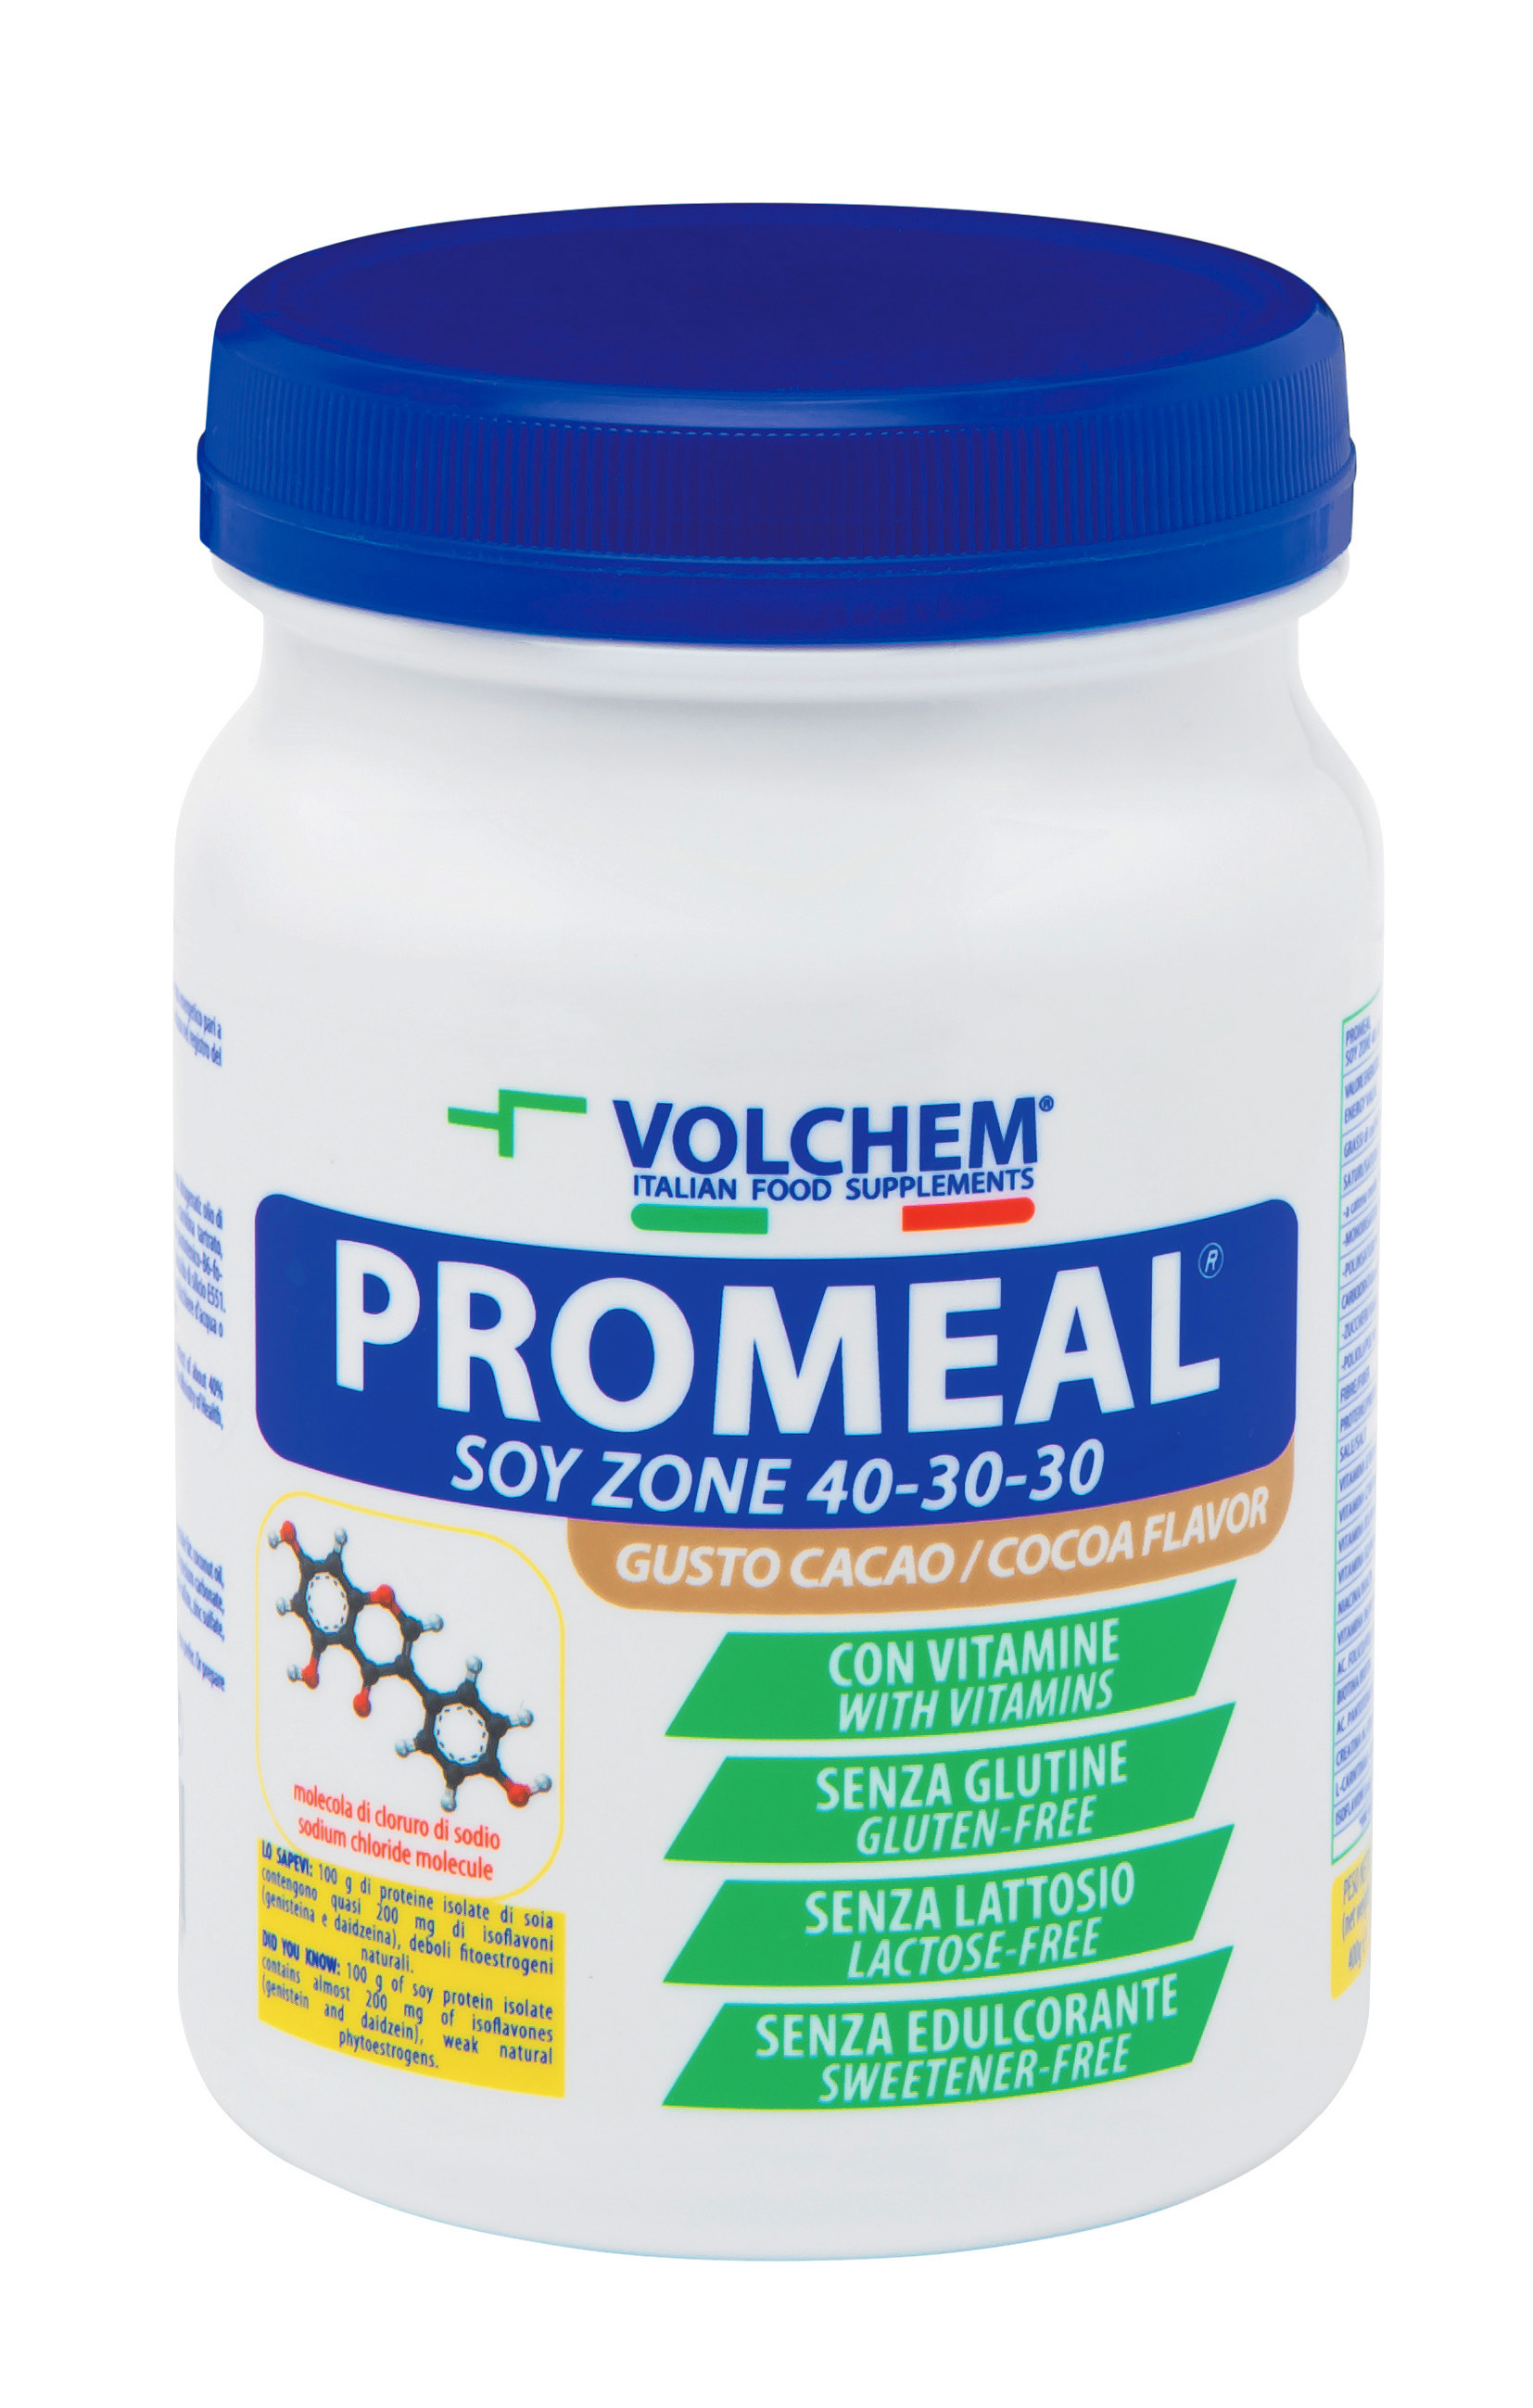 PROMEAL ® SOY ZONE 40-30-30  400g